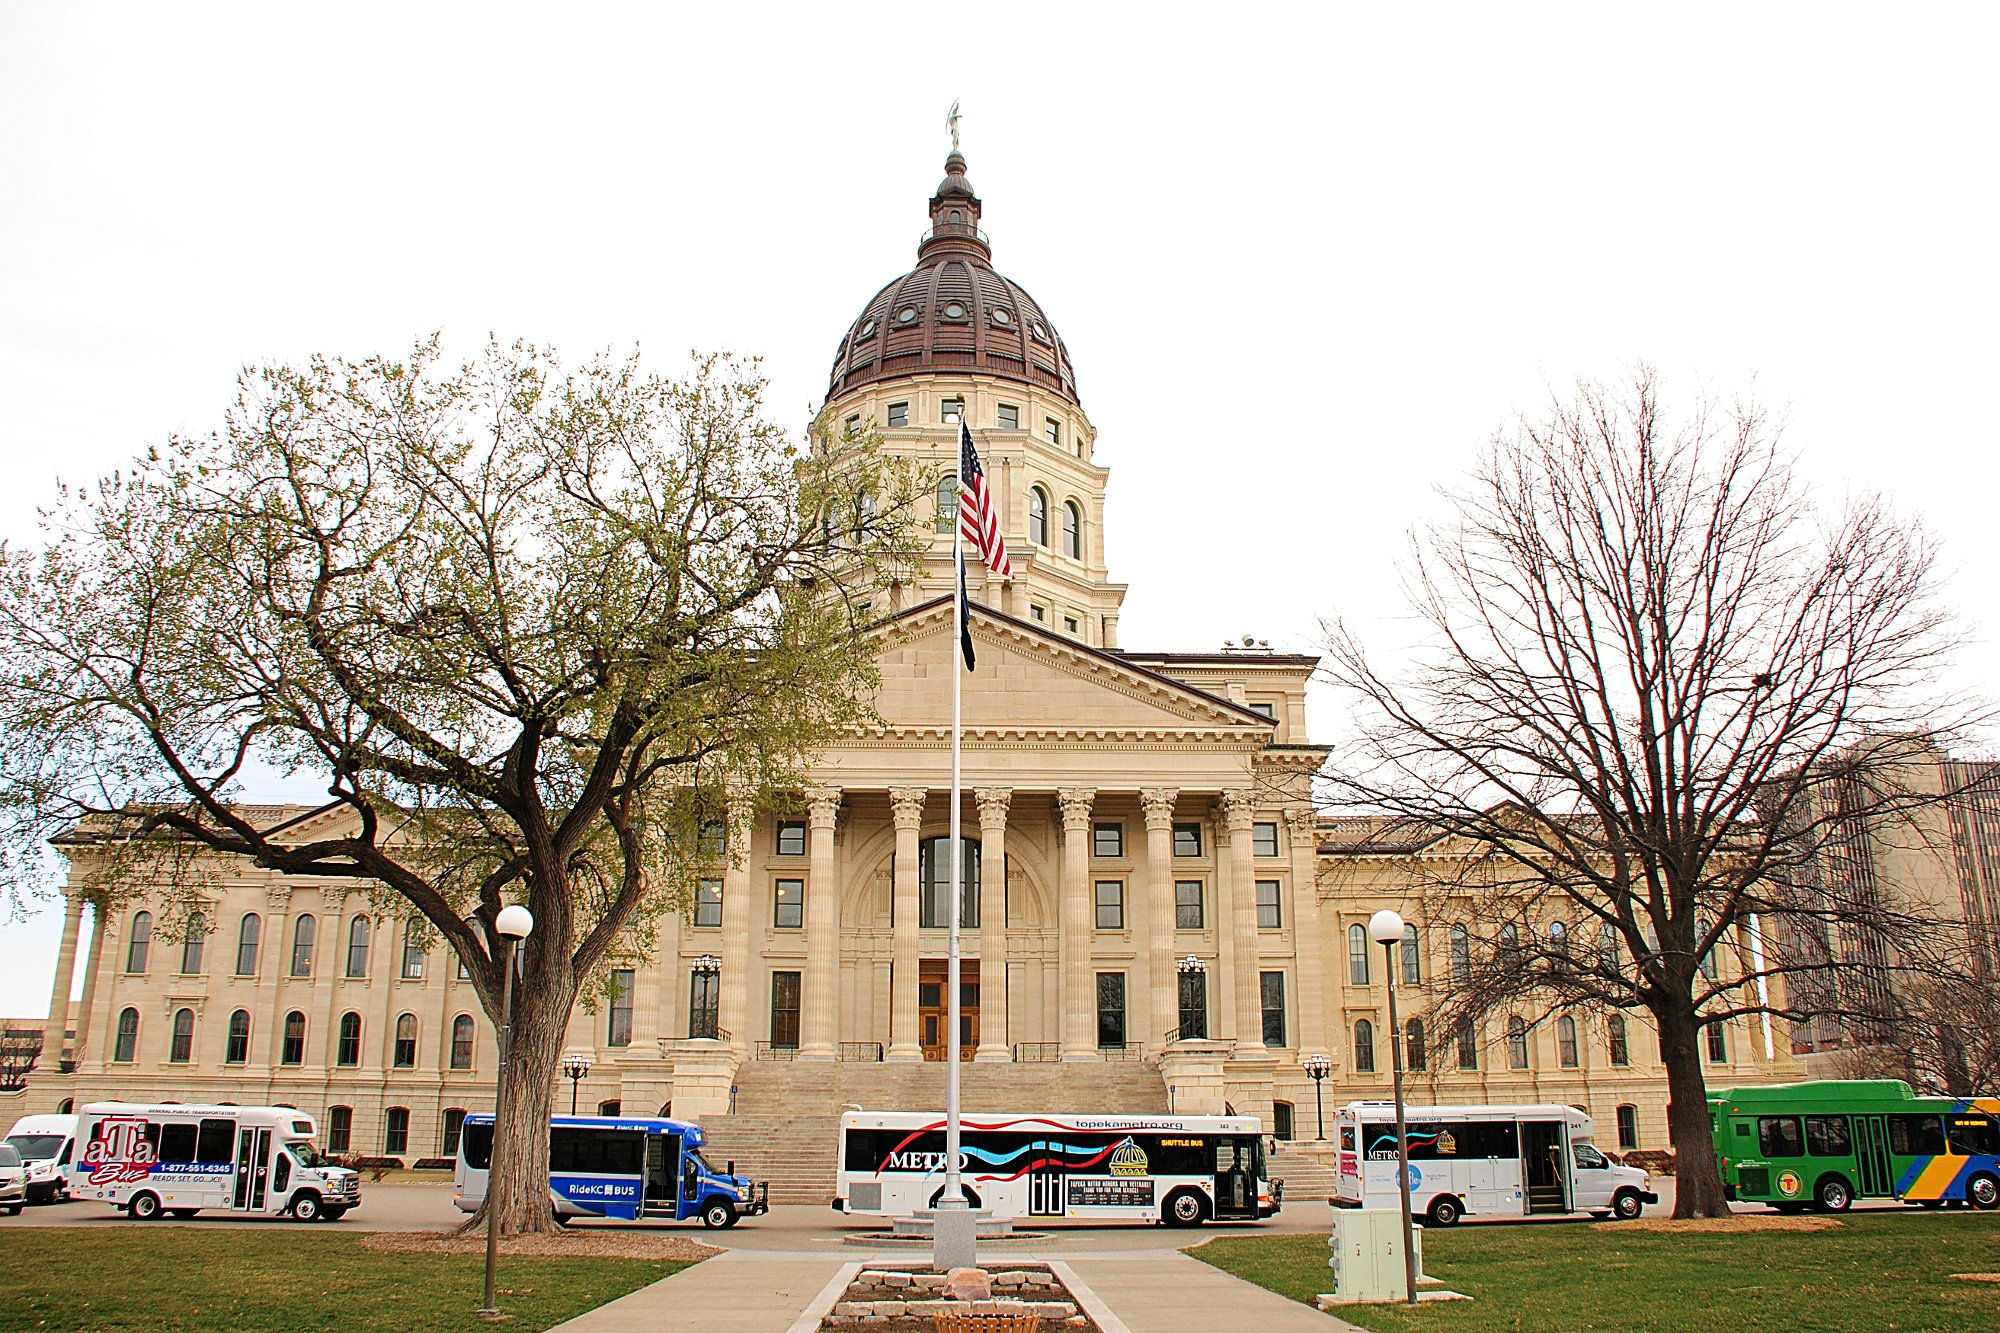 Picture of the Kansas Statehouse with Buses in front of it, March, 2017